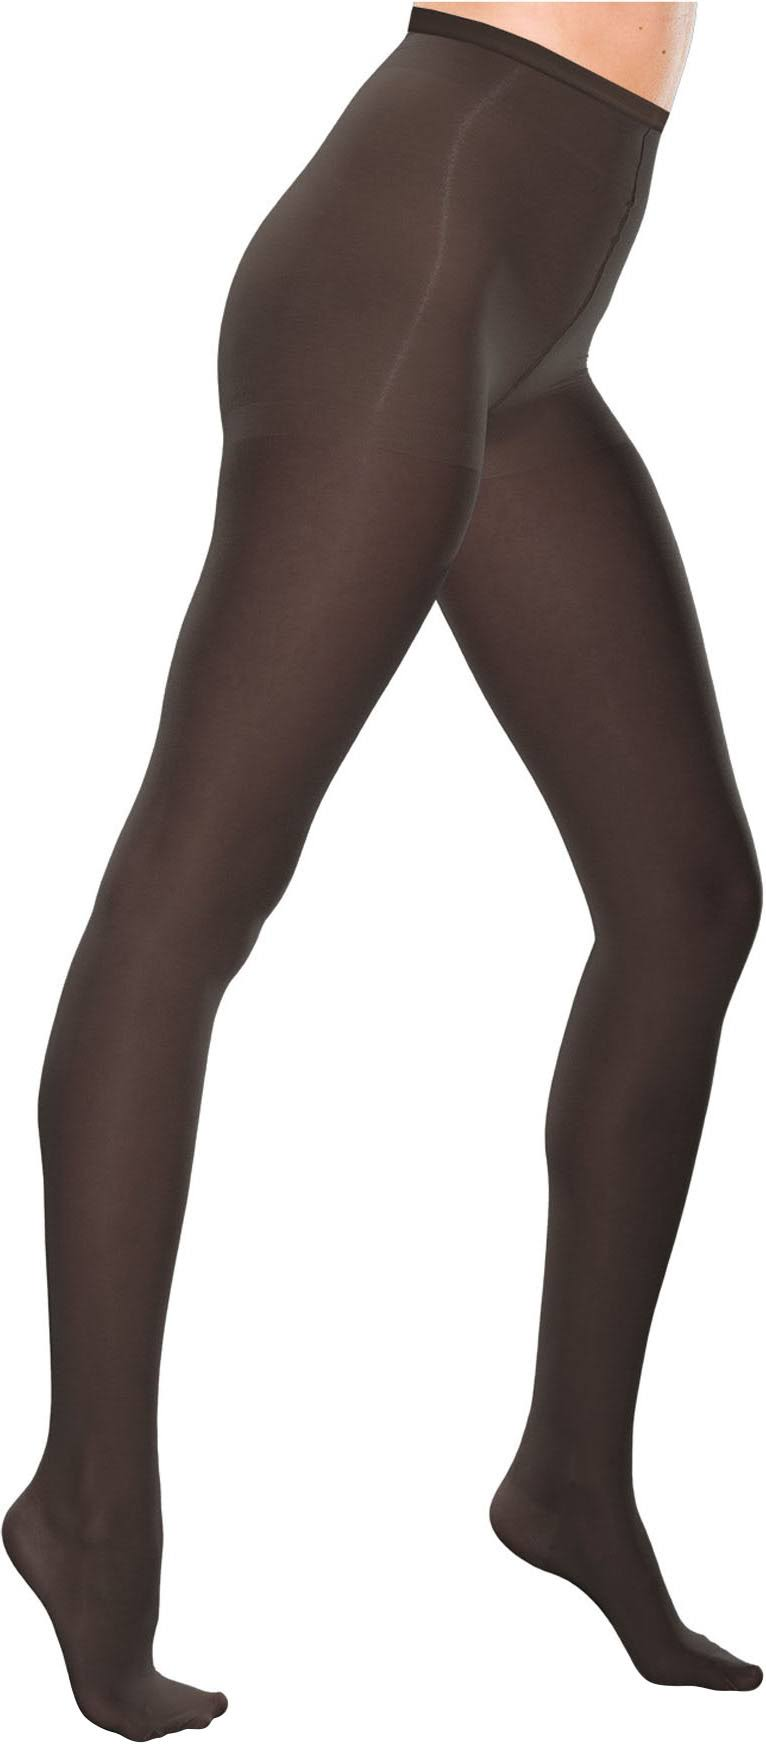 Therafirm 15-20 mmHg Pantyhose - Black